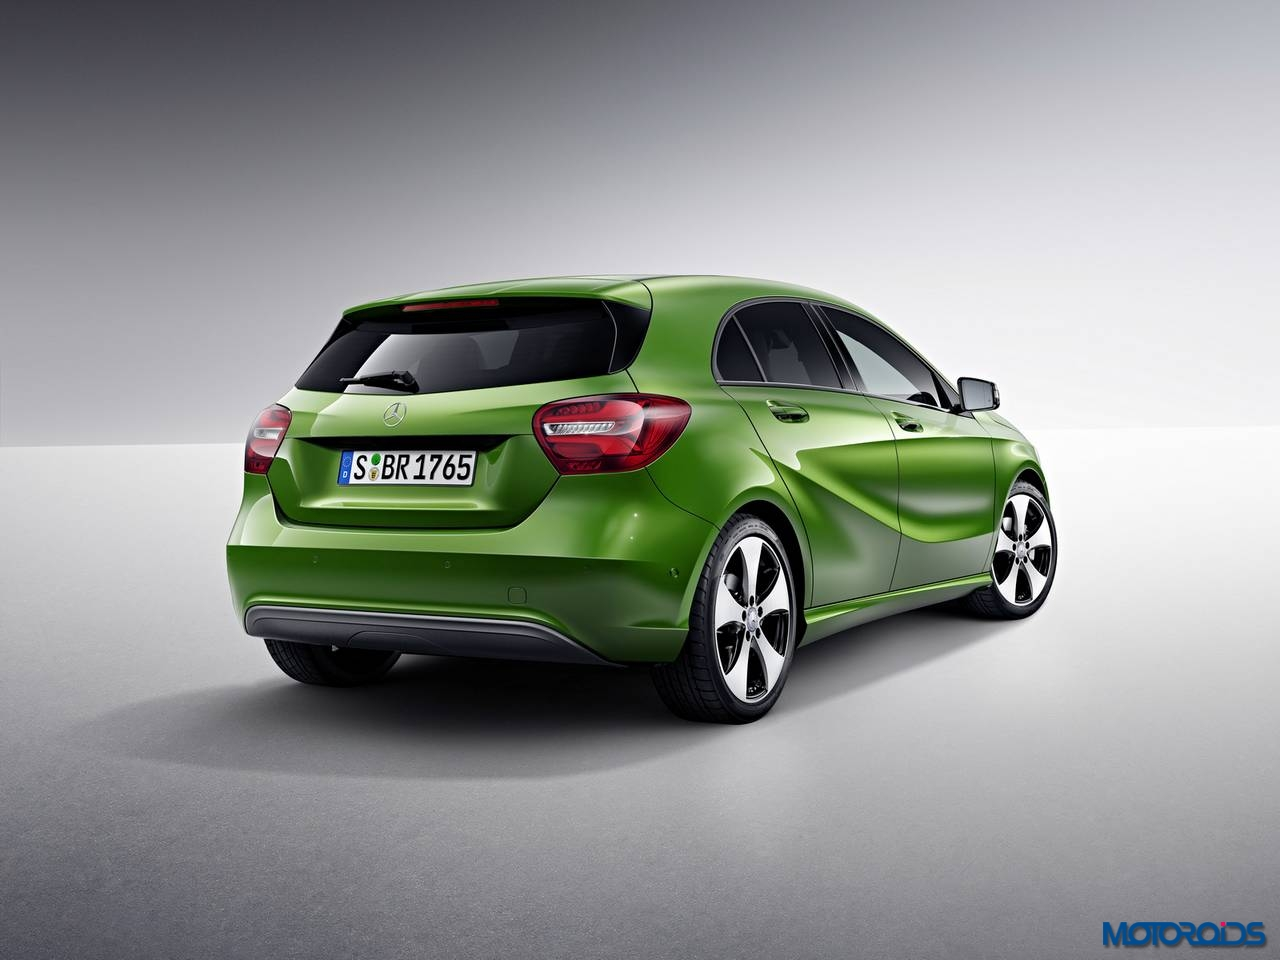 2016 mercedes benz a class facelift set to launch in india on december 8 motoroids. Black Bedroom Furniture Sets. Home Design Ideas